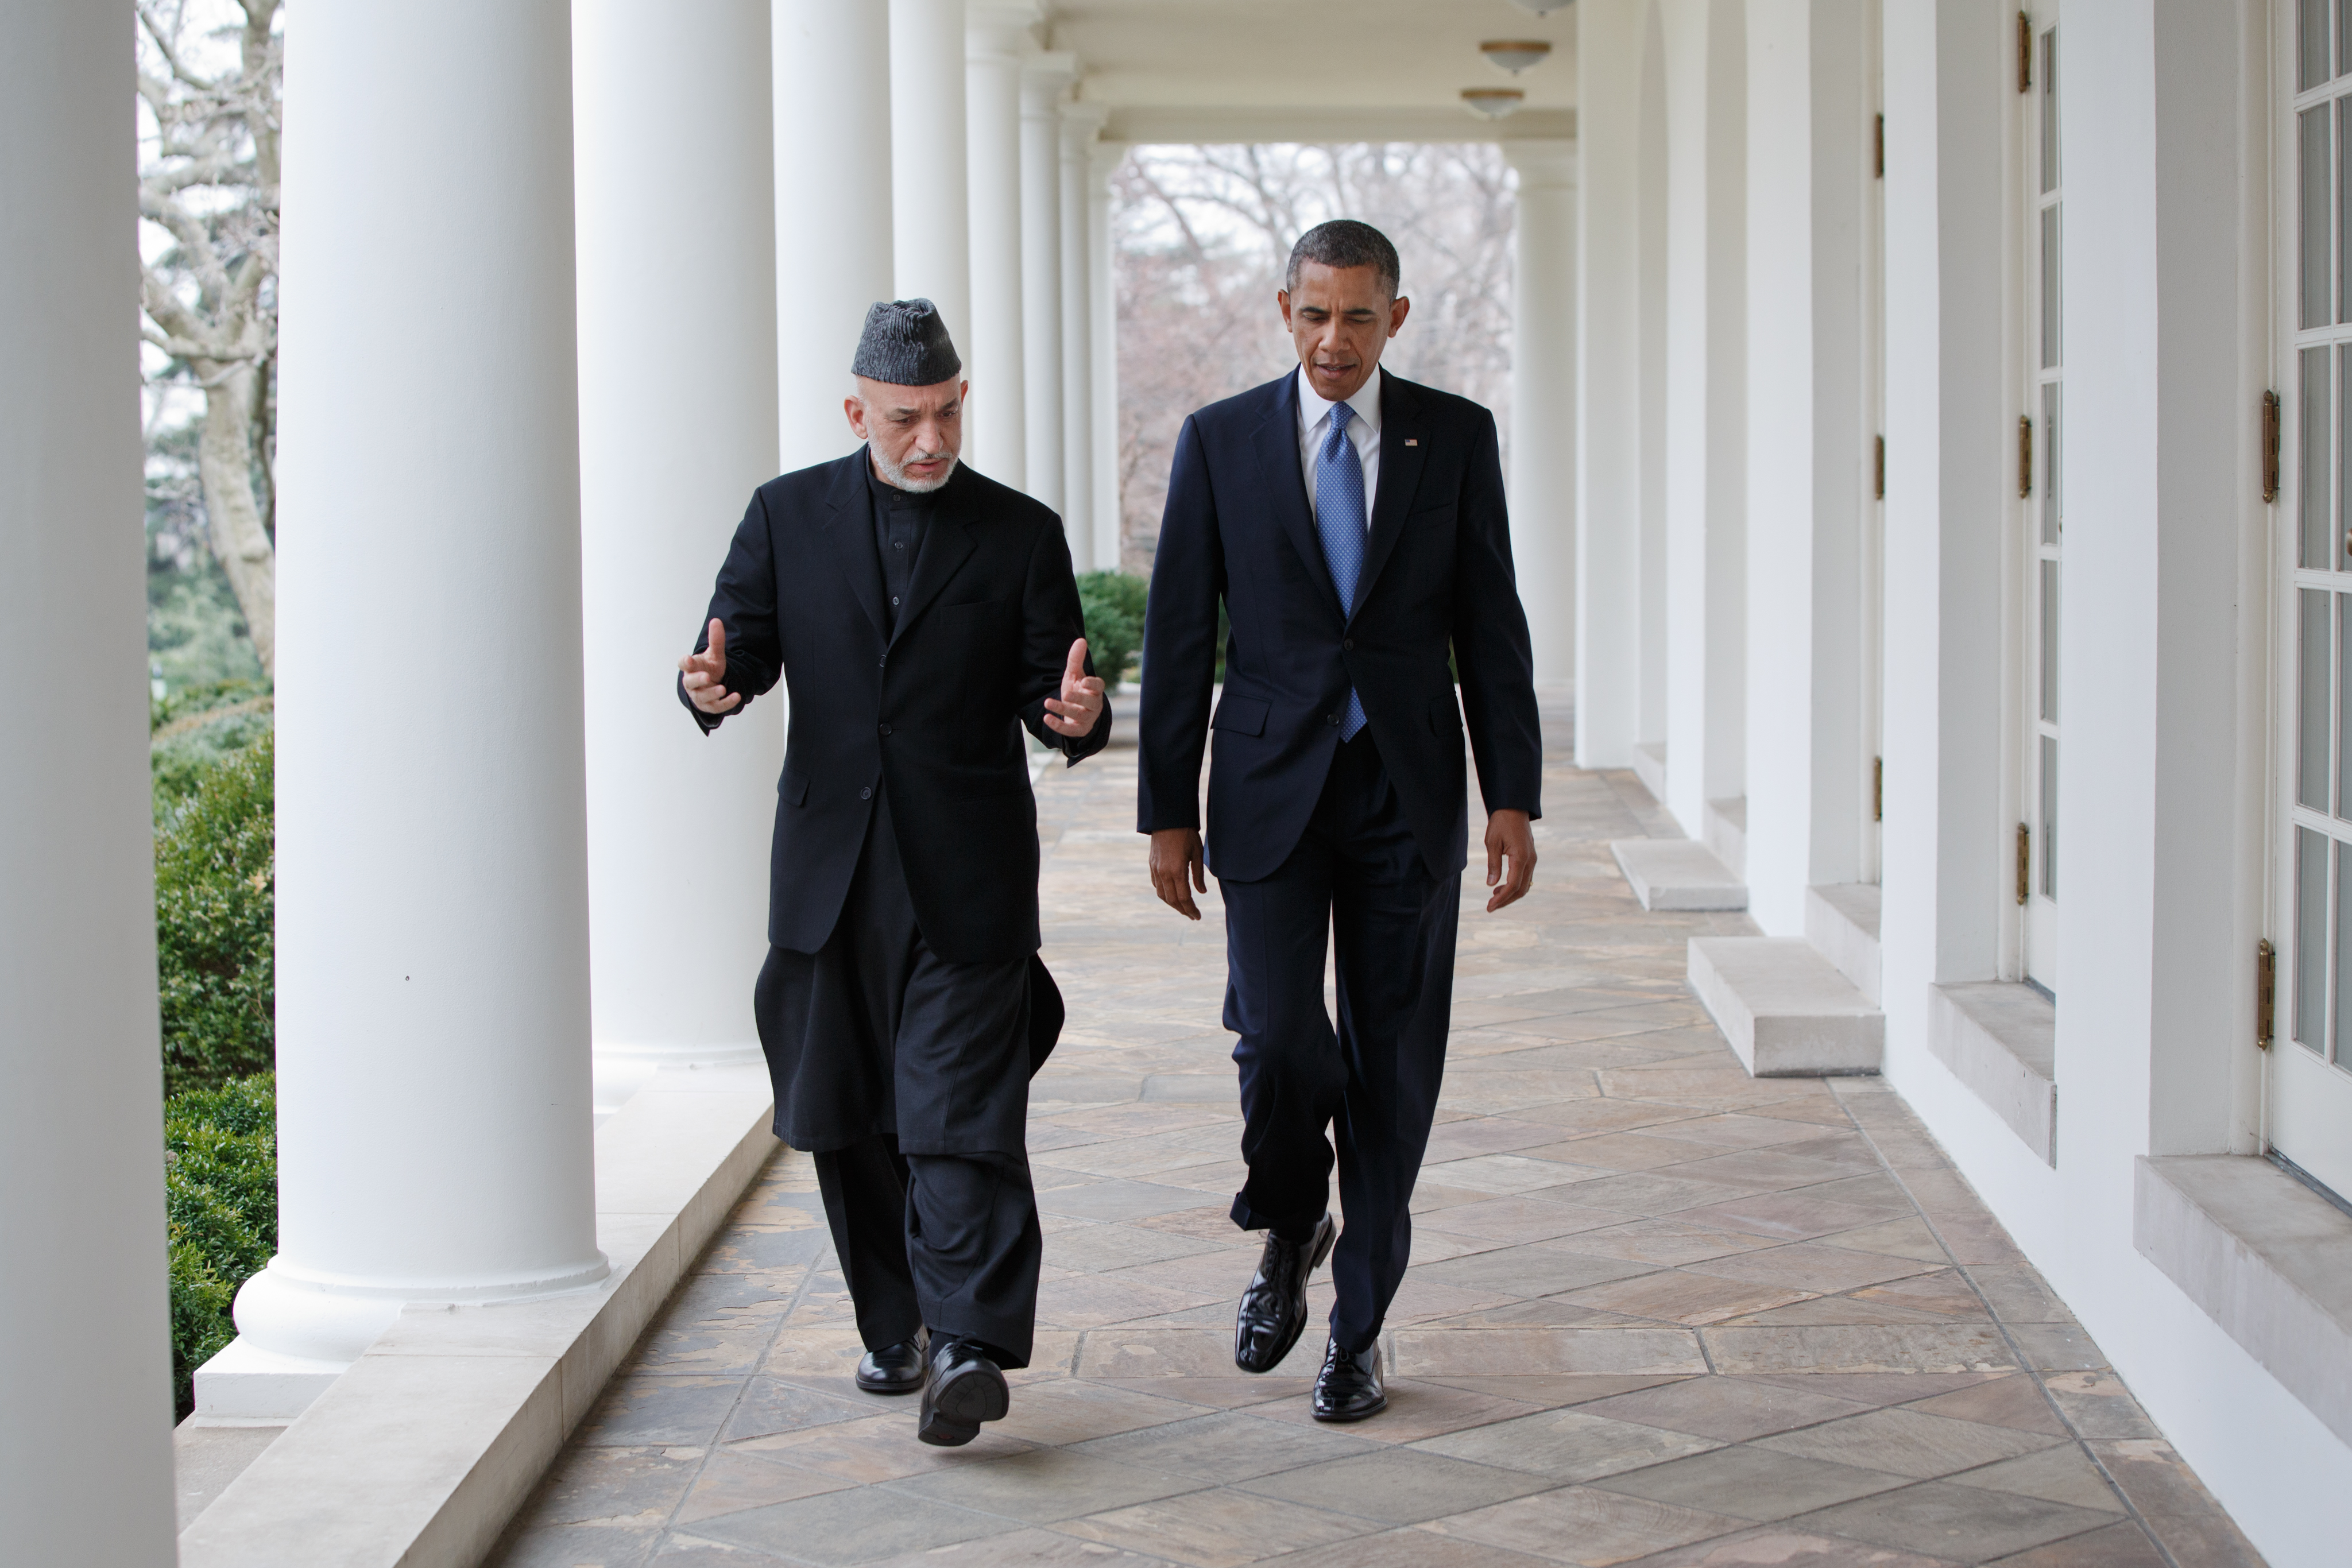 filepresident barack obama and president hamid karzai of afghanistan walk on the colonnade after